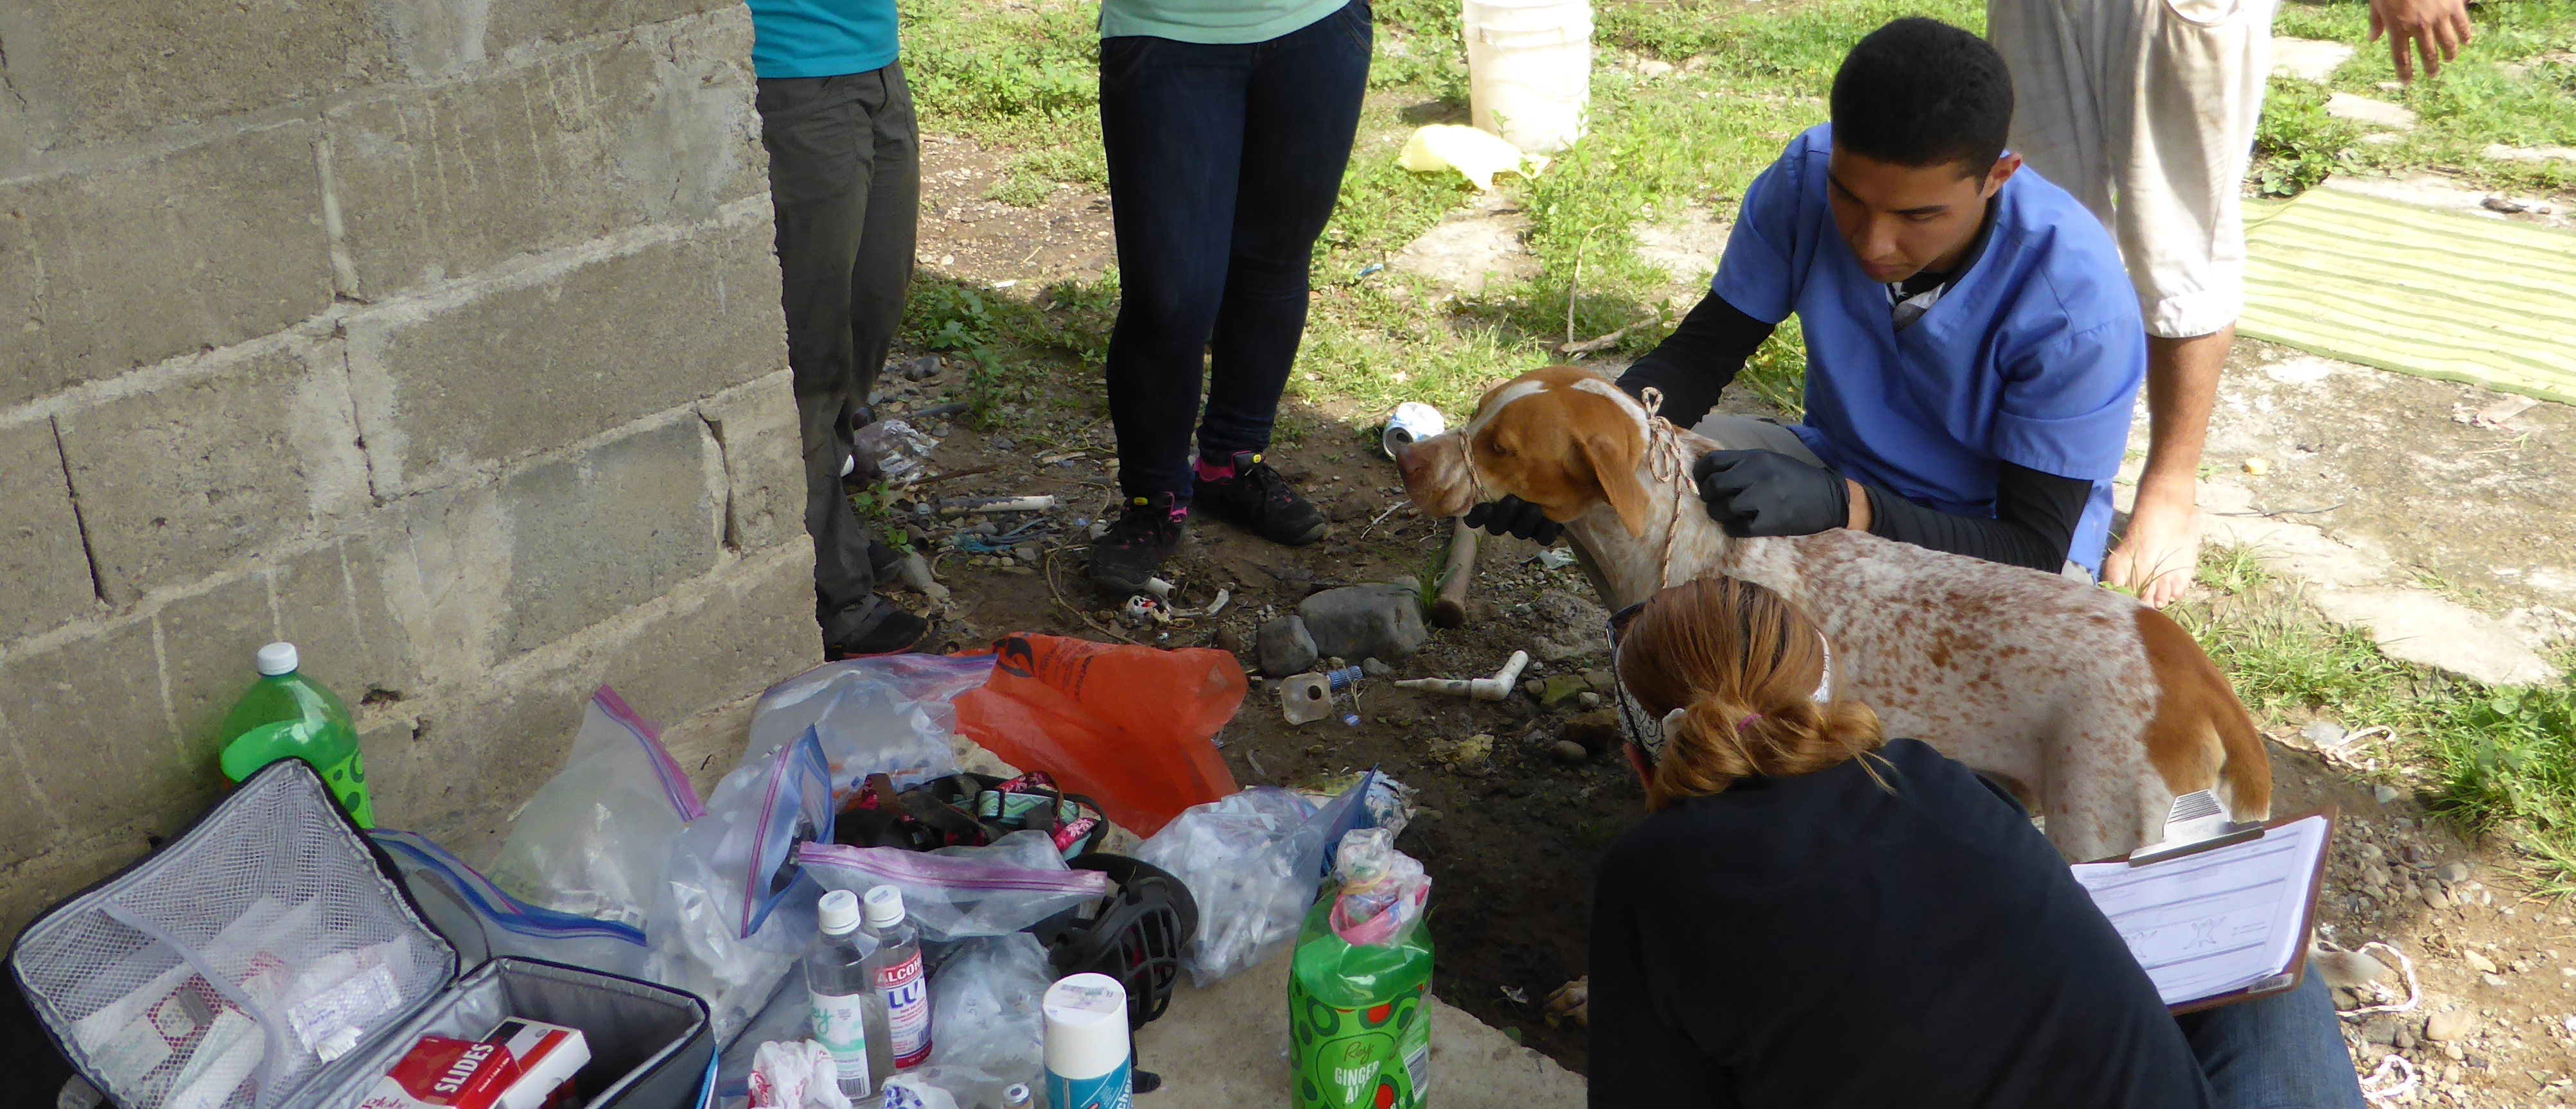 Members of the zoonotic disease research team take blood samples from a dog